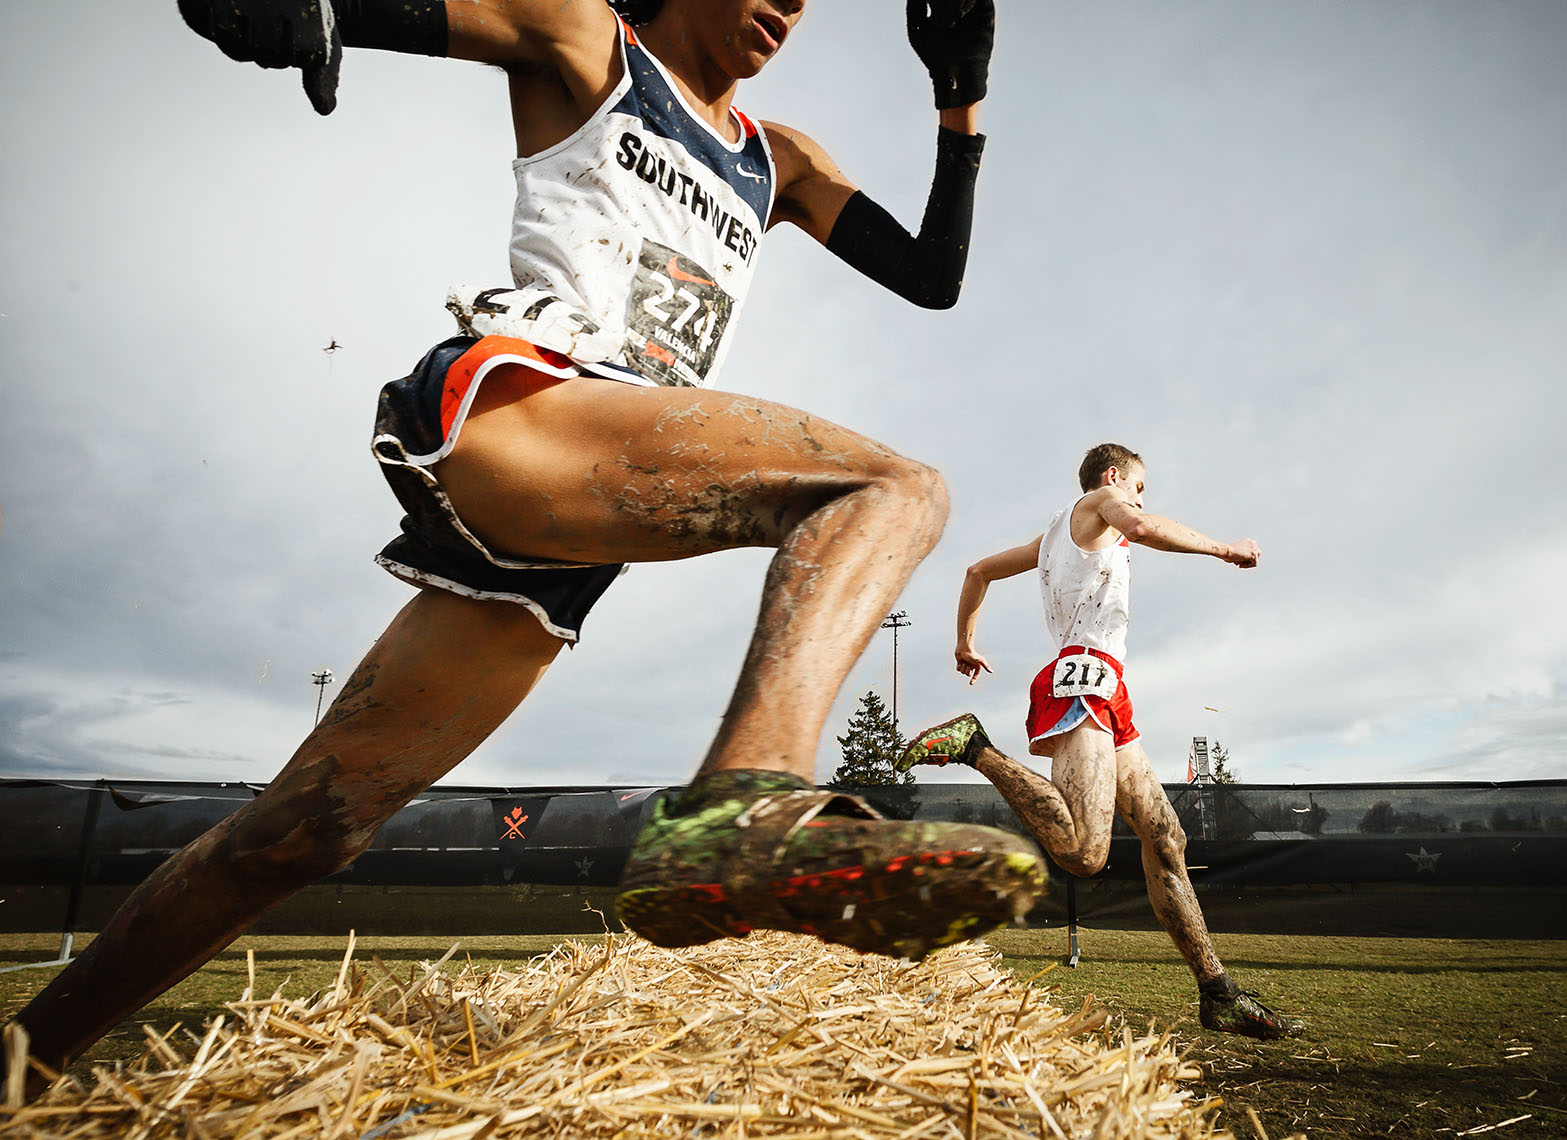 NikeCrossNationals_DanRoot_09.JPG